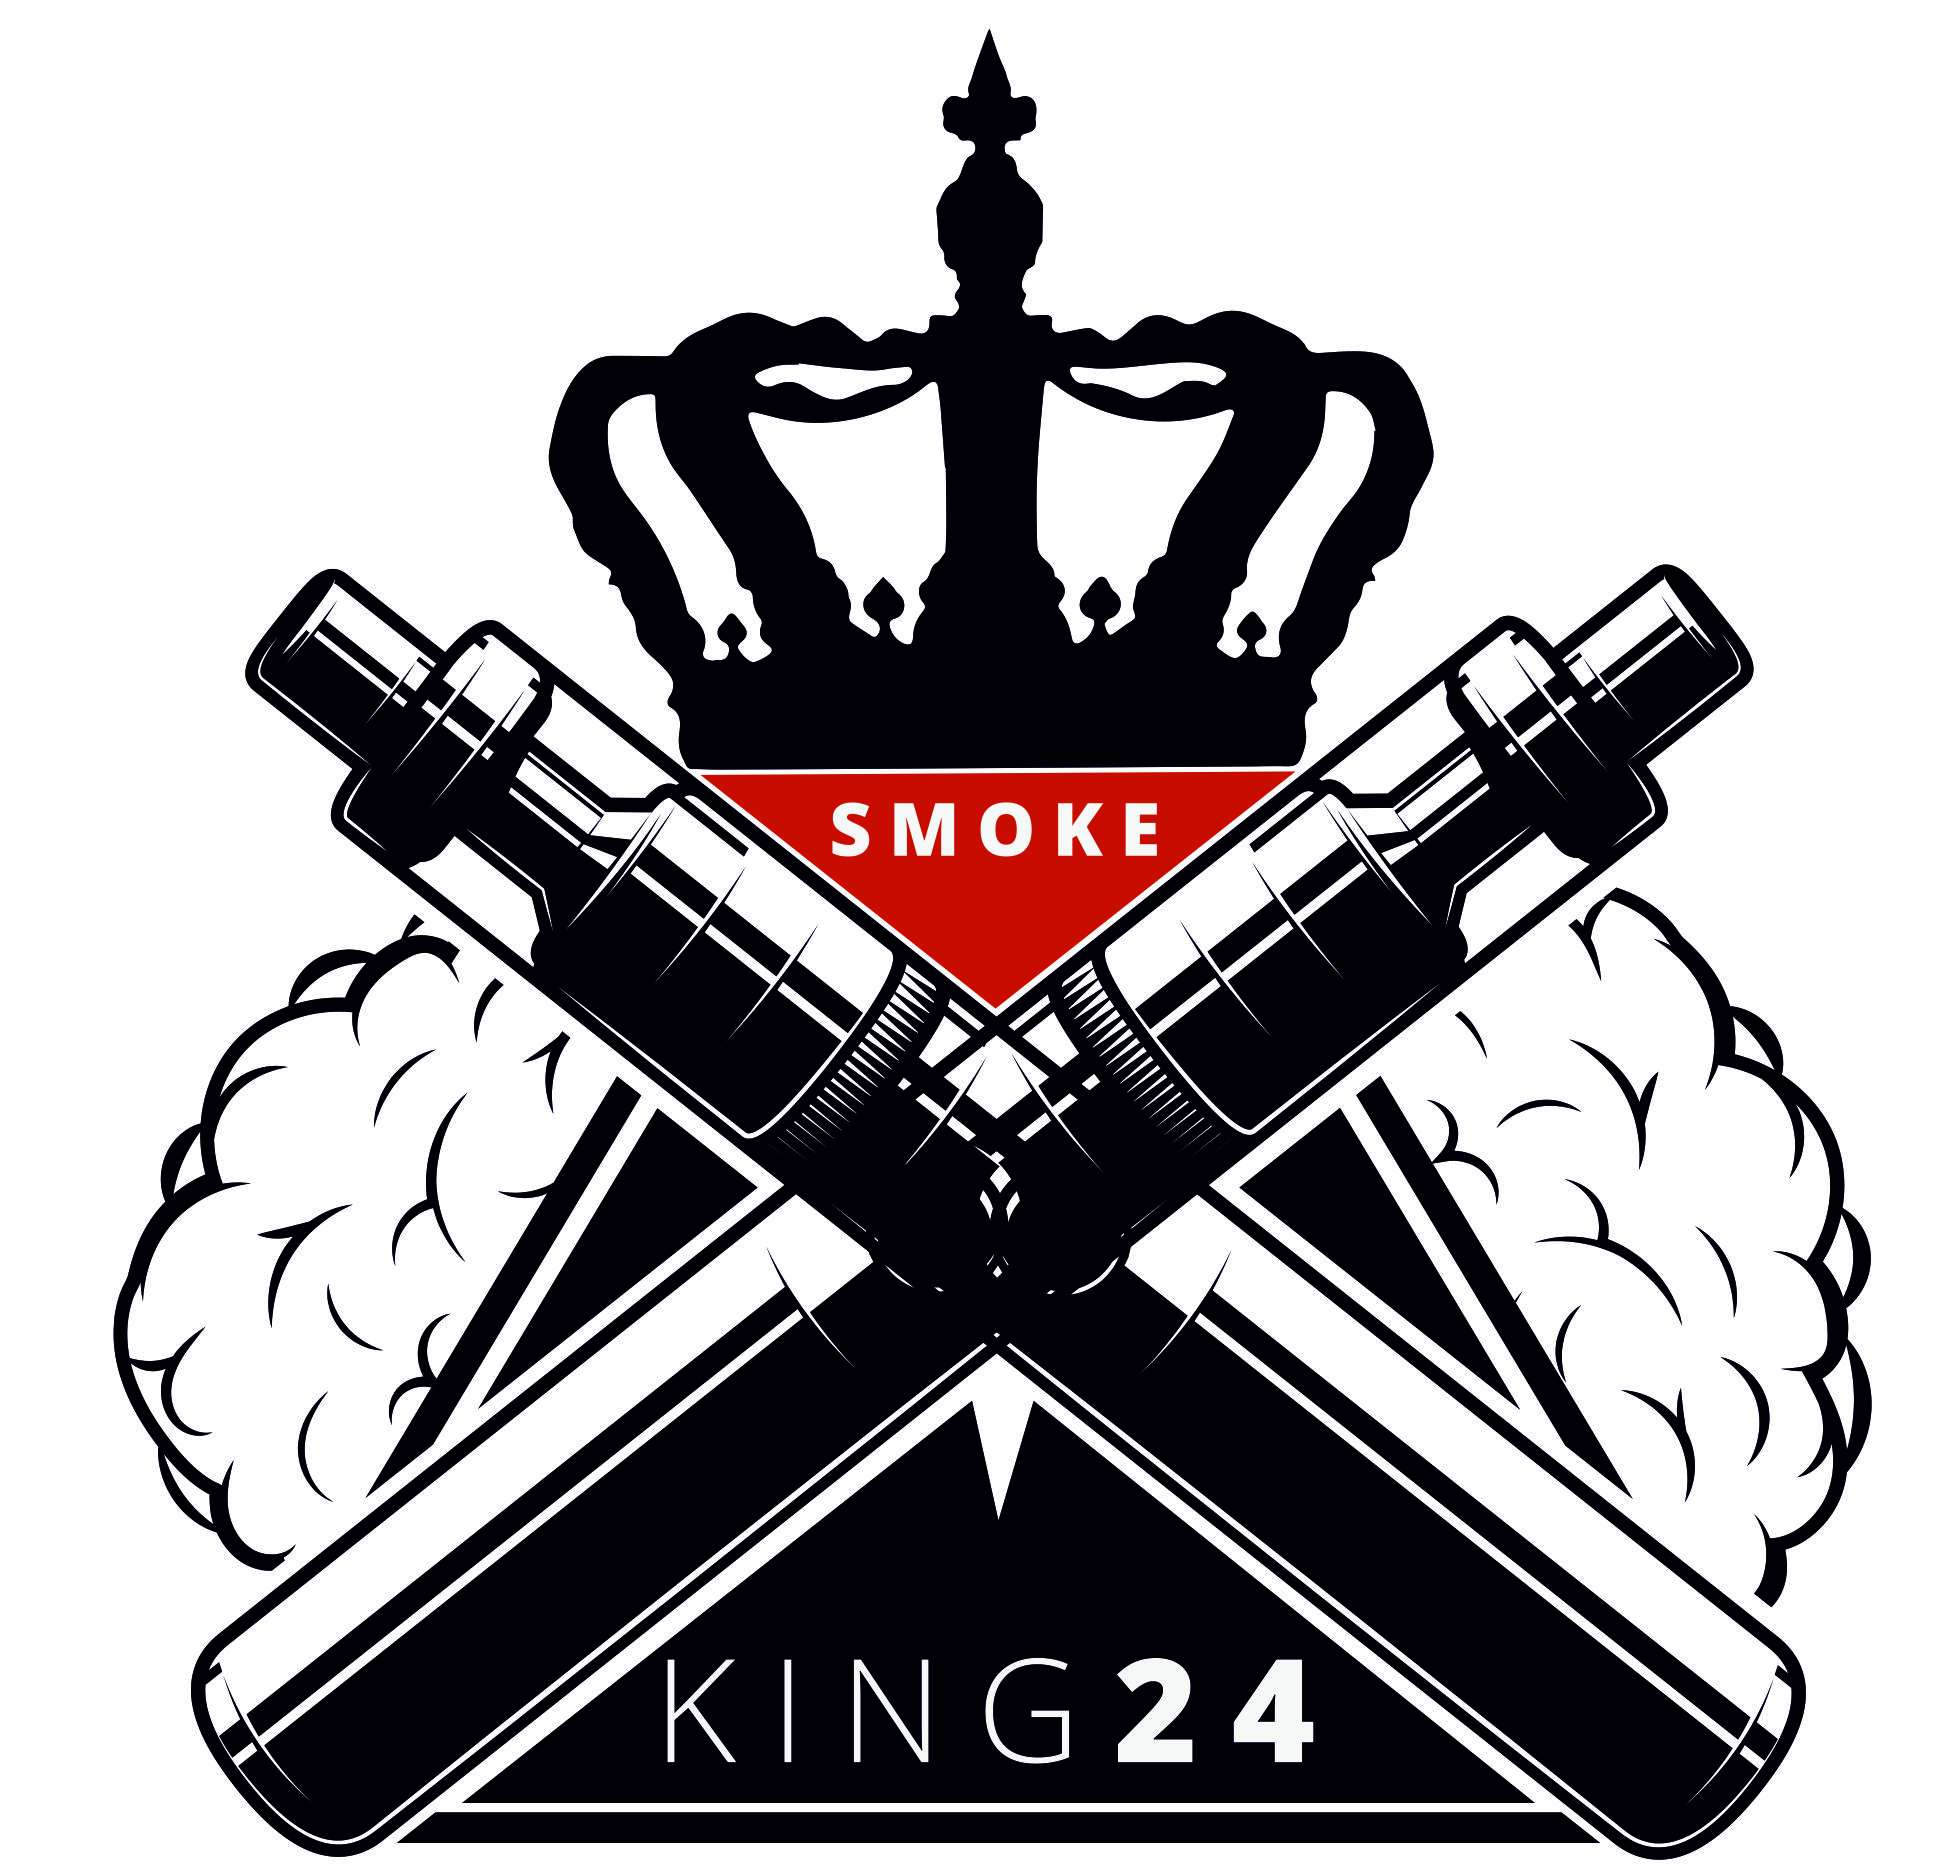 SmokeKing24